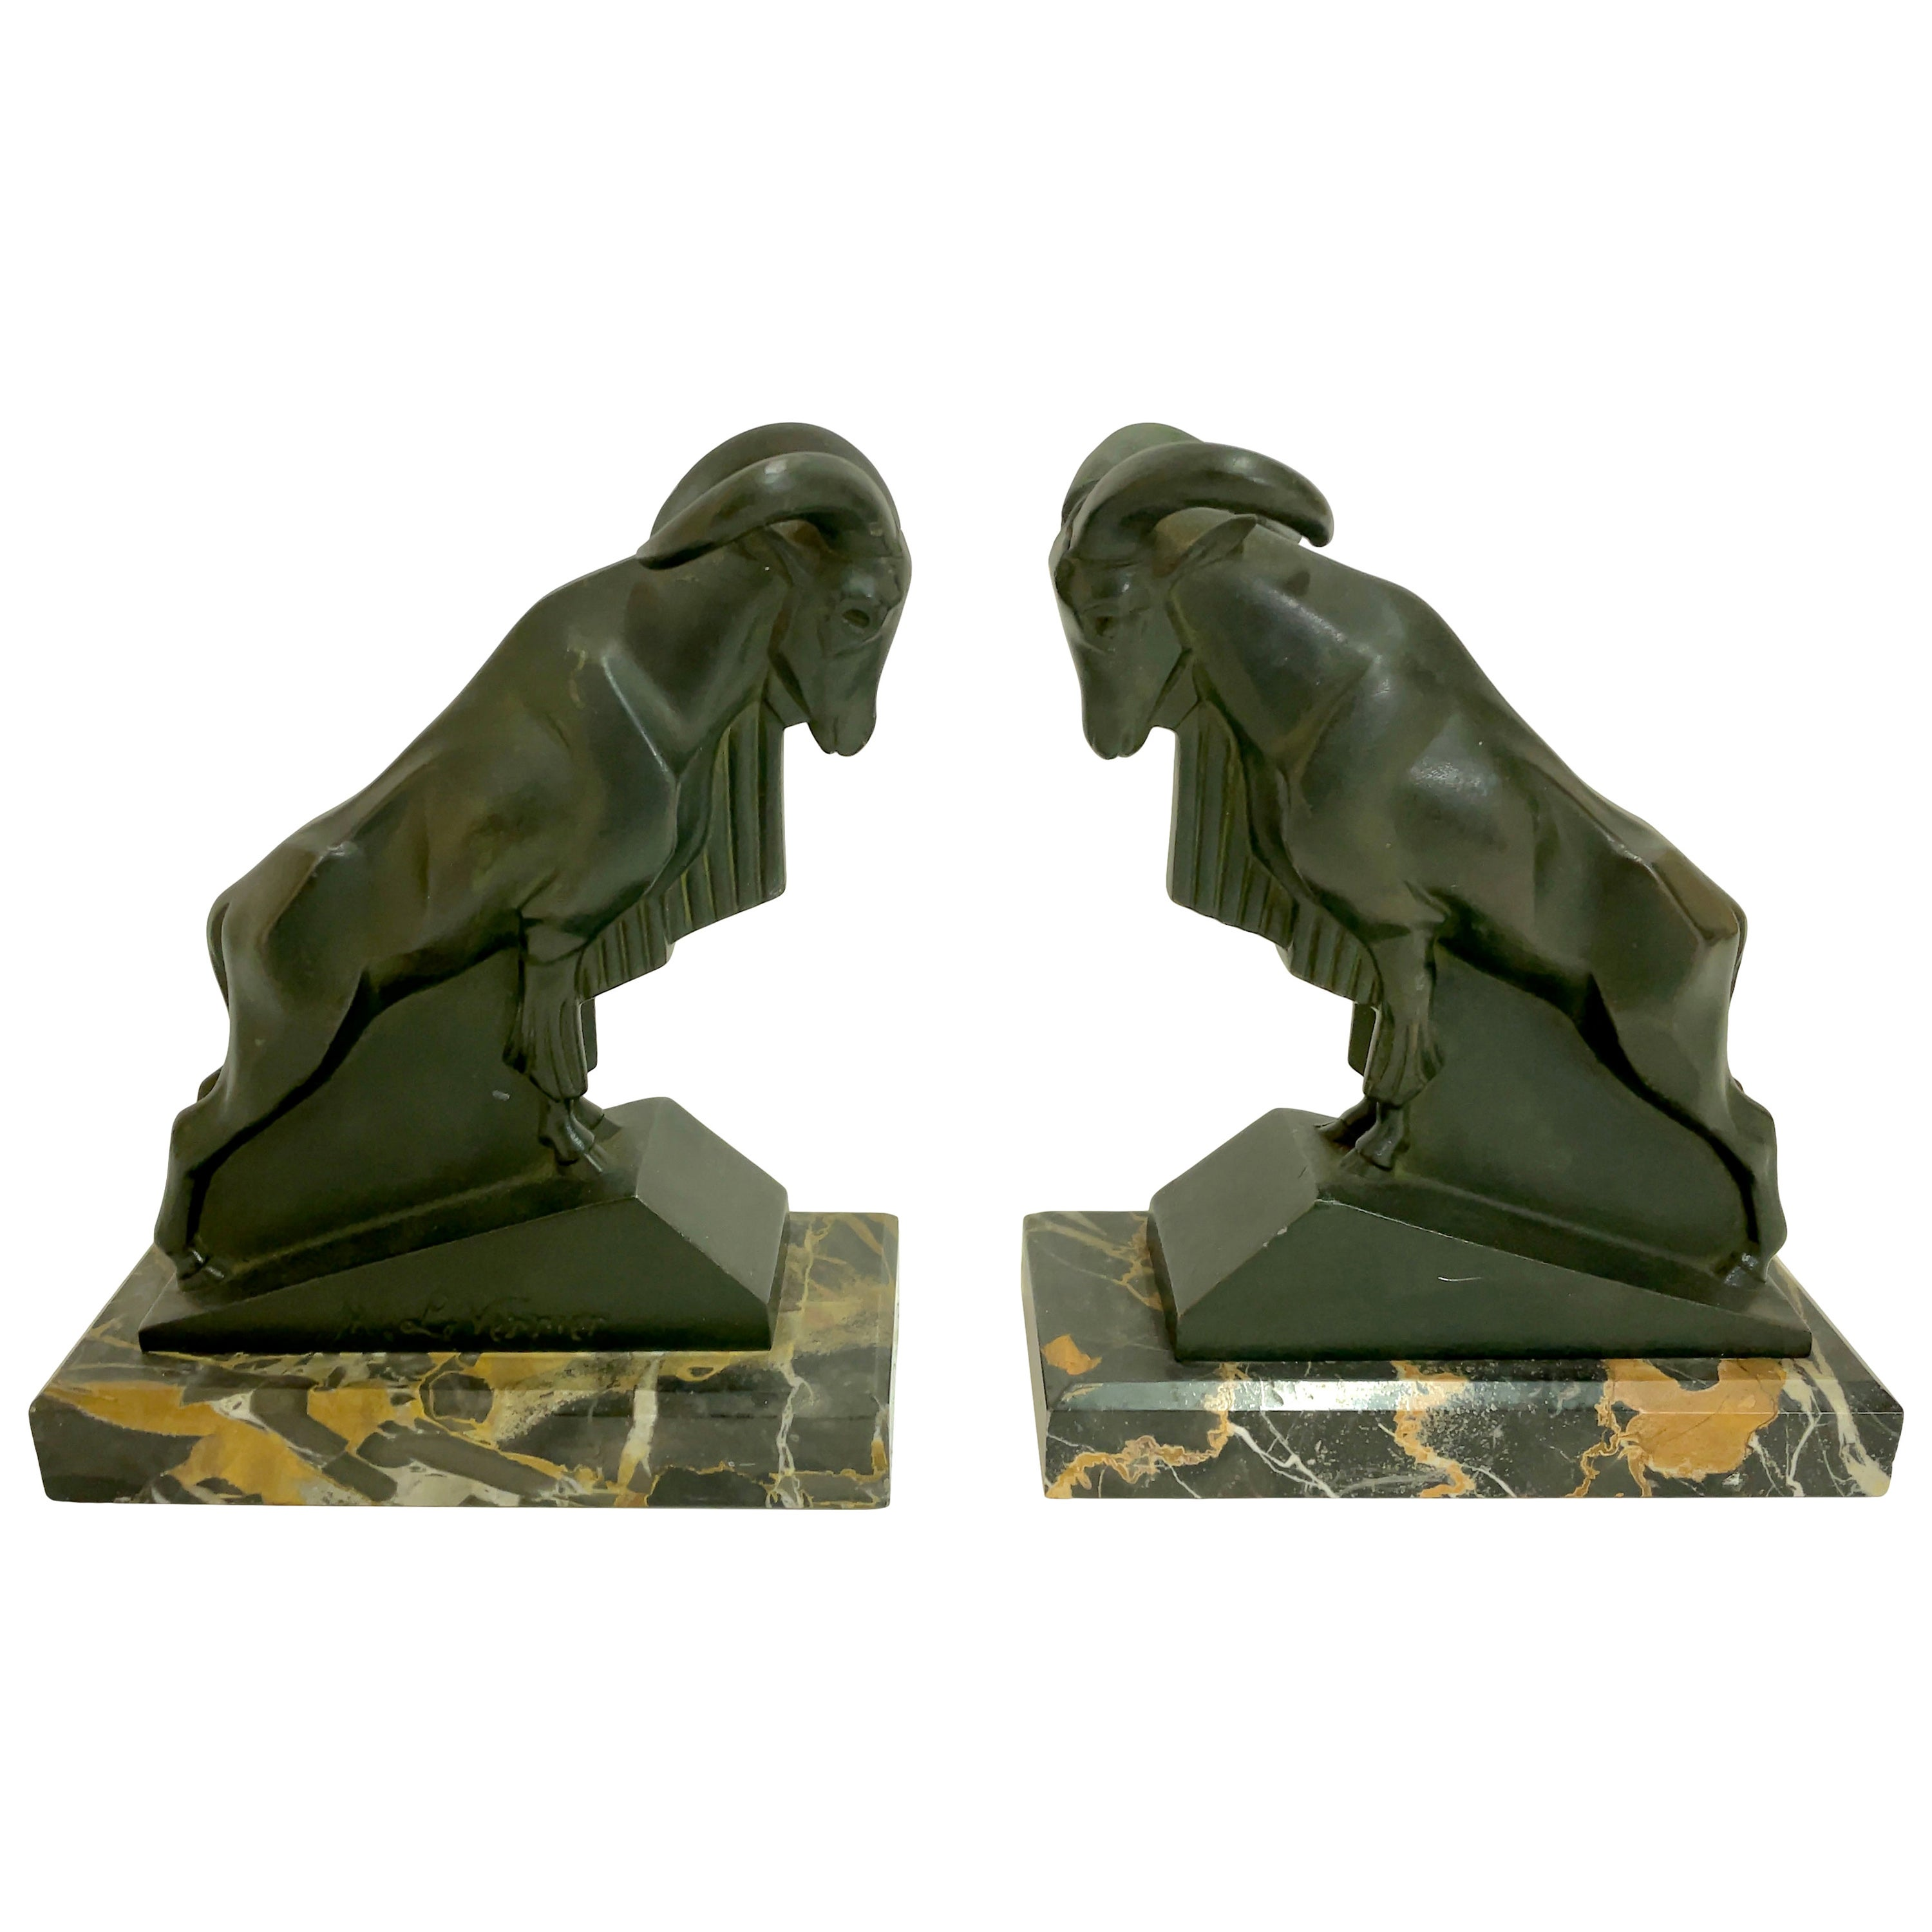 Mouflon Original Art Deco Bookends of Two Aries by Max Le Verrier with Patina